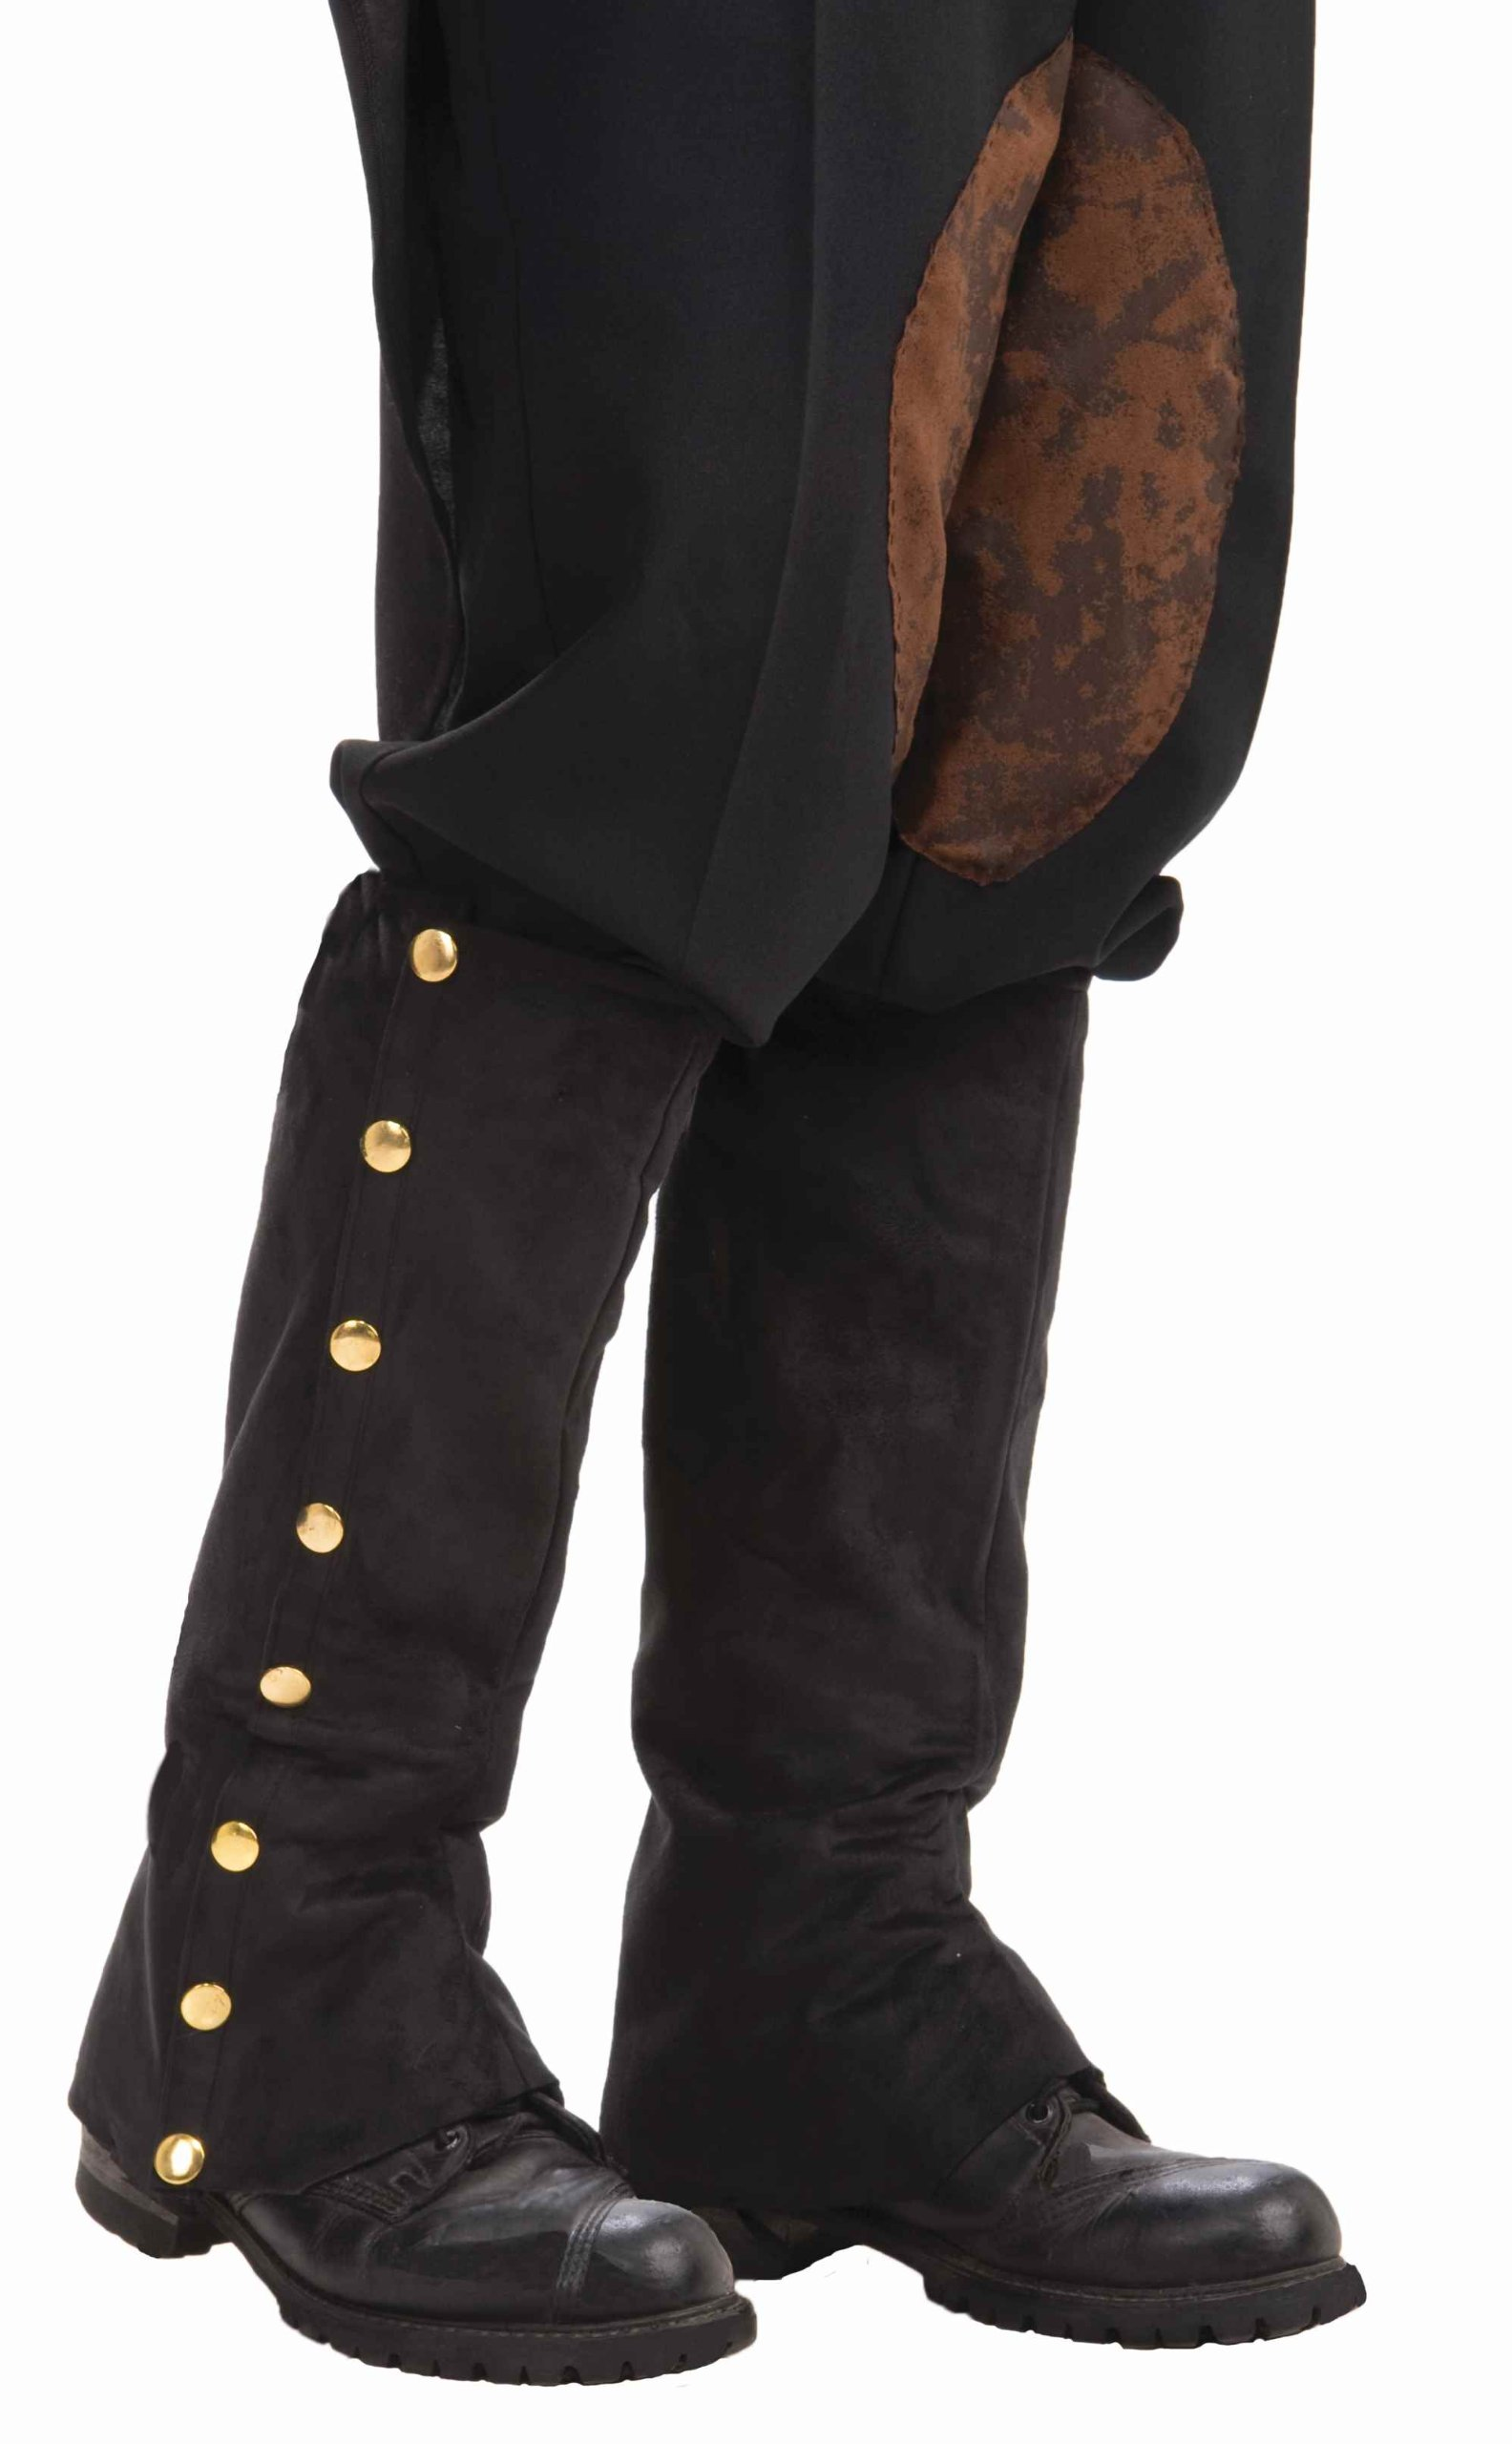 Forum Novelties Men's Adult Steampunk Suede Spats Costume Accessory 2